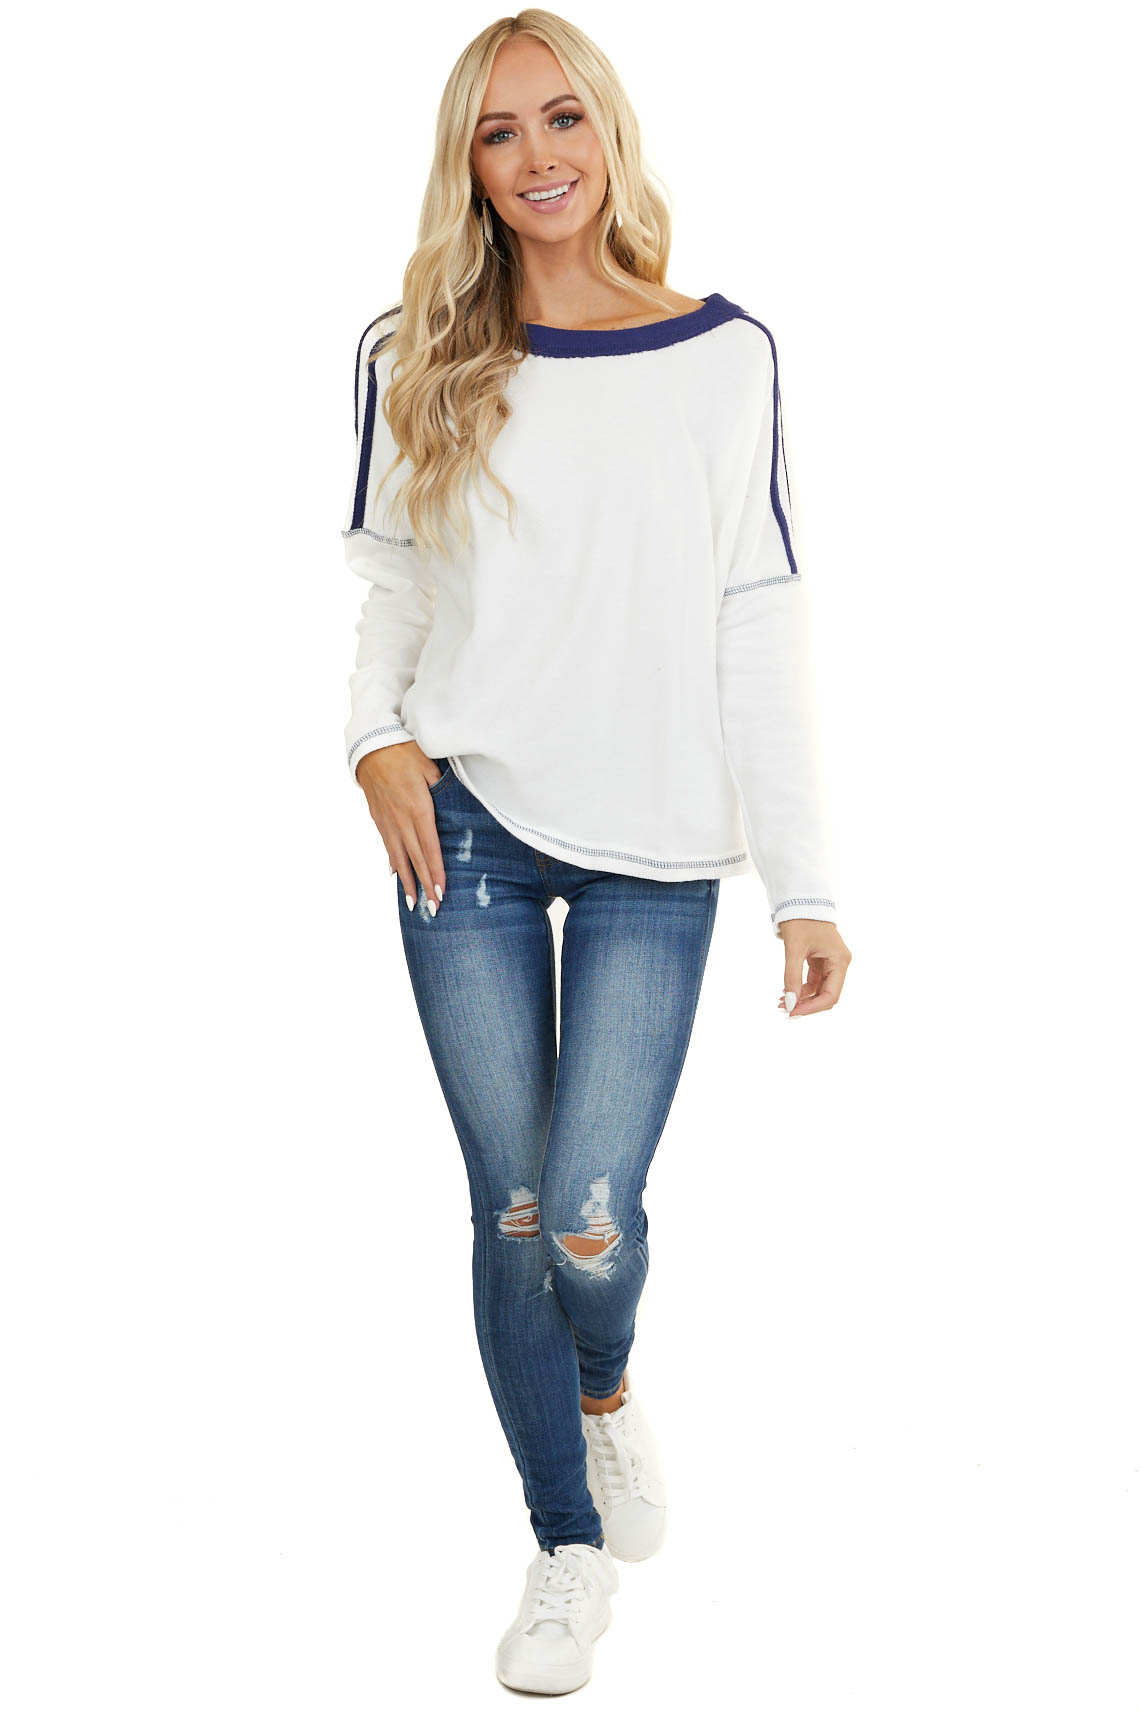 White and Navy Blue Long Sleeve Top with Stitching Detail